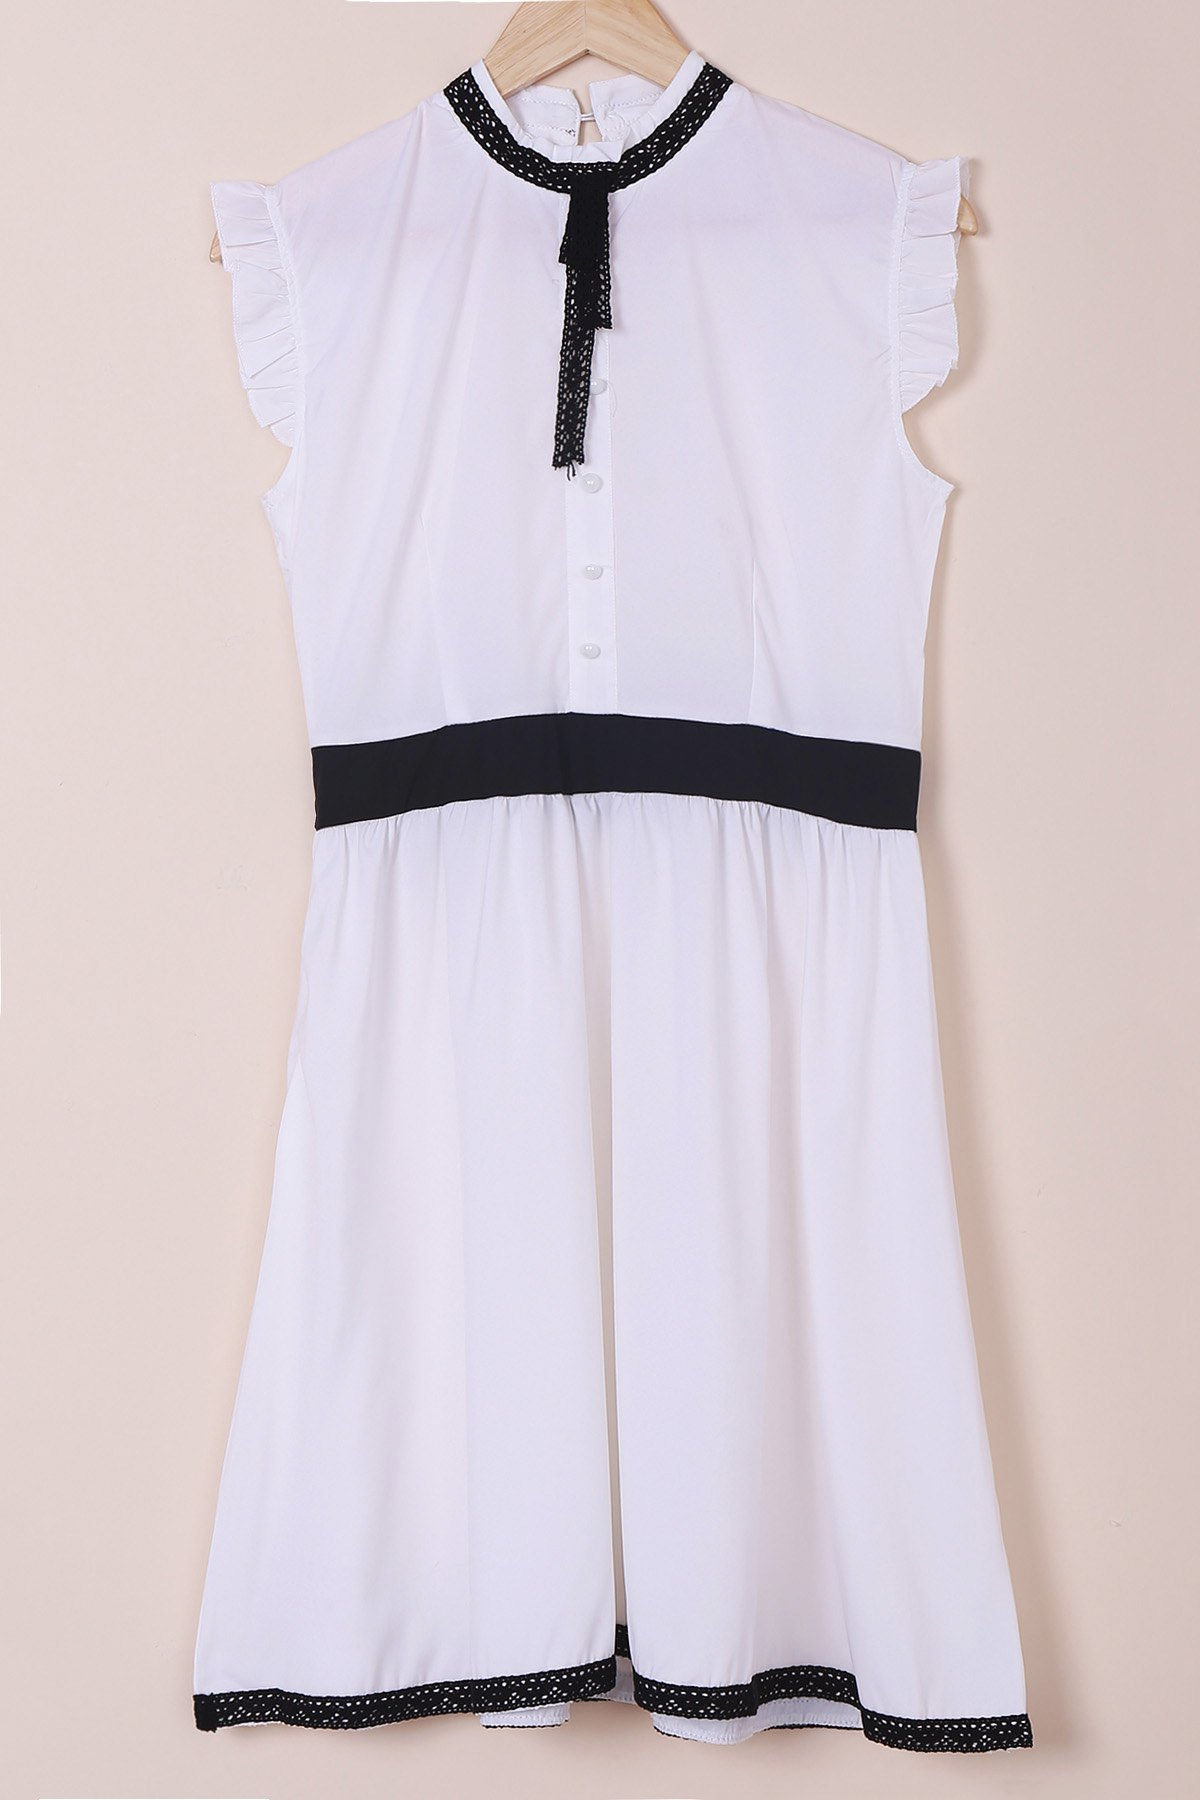 Stand Collar Dress Designs : White vintage stand collar lace up ruched button design